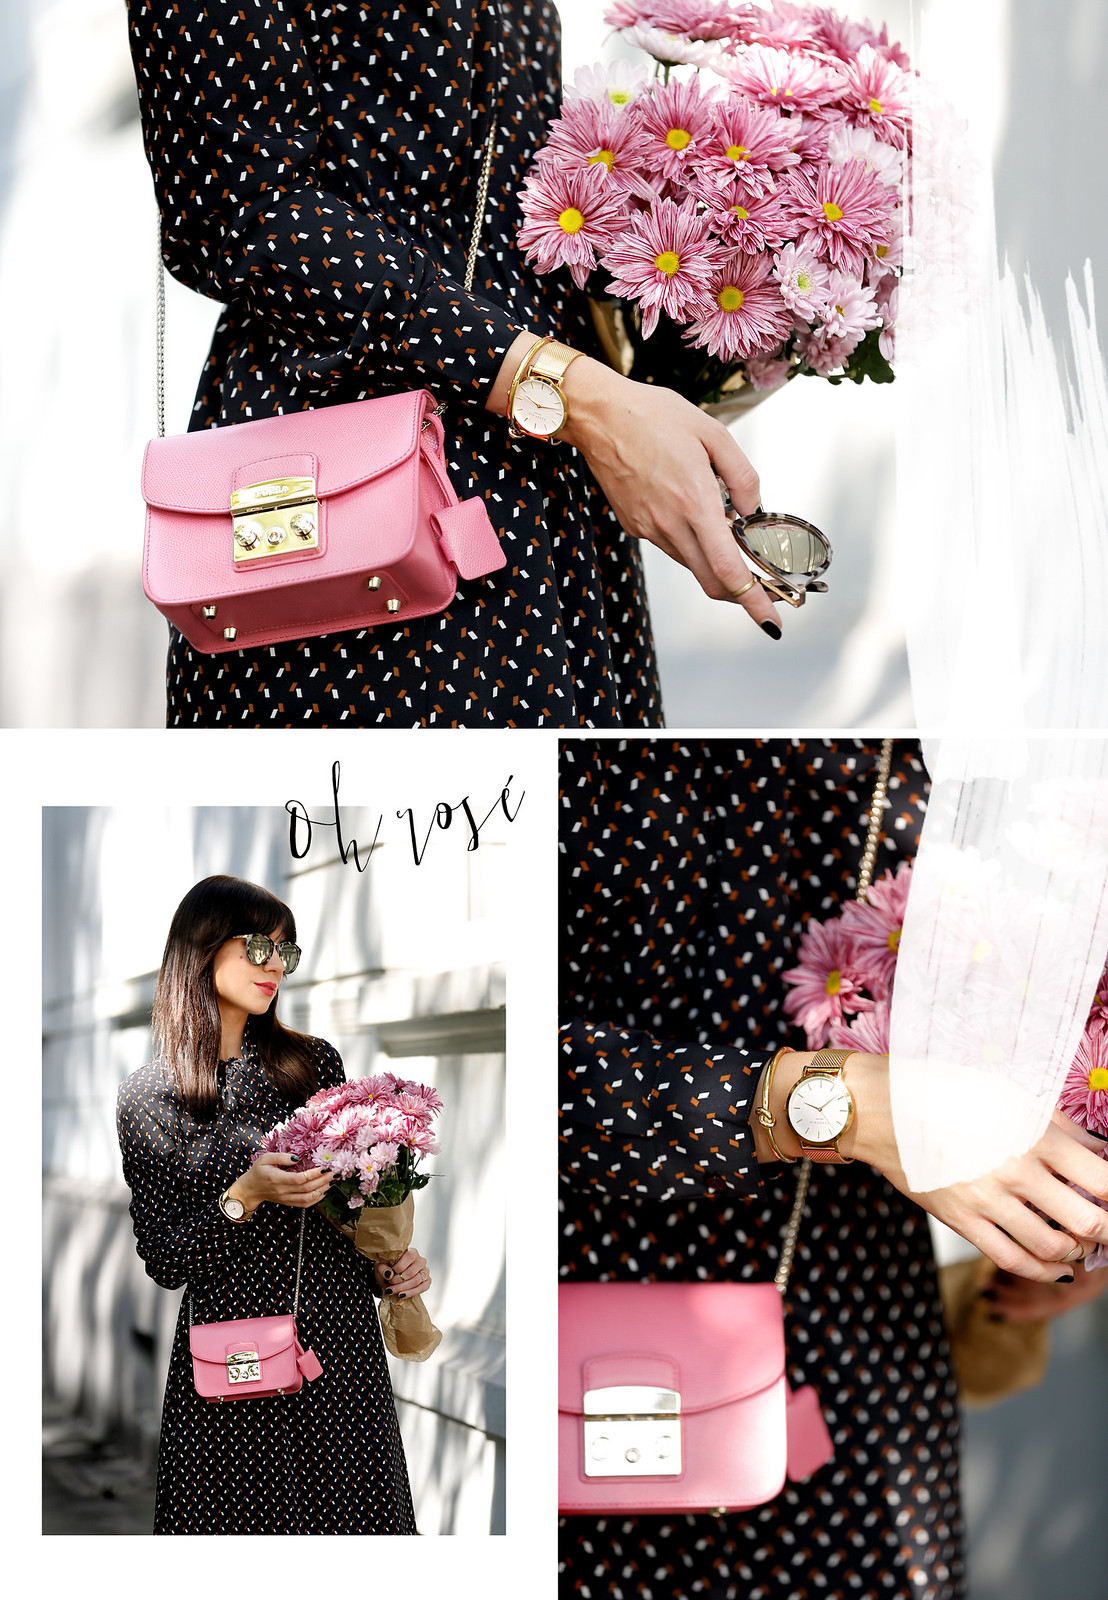 outfit look lookbook inspiration inspo pink furla metropolis mini bag about you patrizia dini dress late summer rose poem fashionblogger lifestyle blogger zara chanel pumps black white minimal chic cats & dogs fashionblog ricarda schernus modeblogger 2